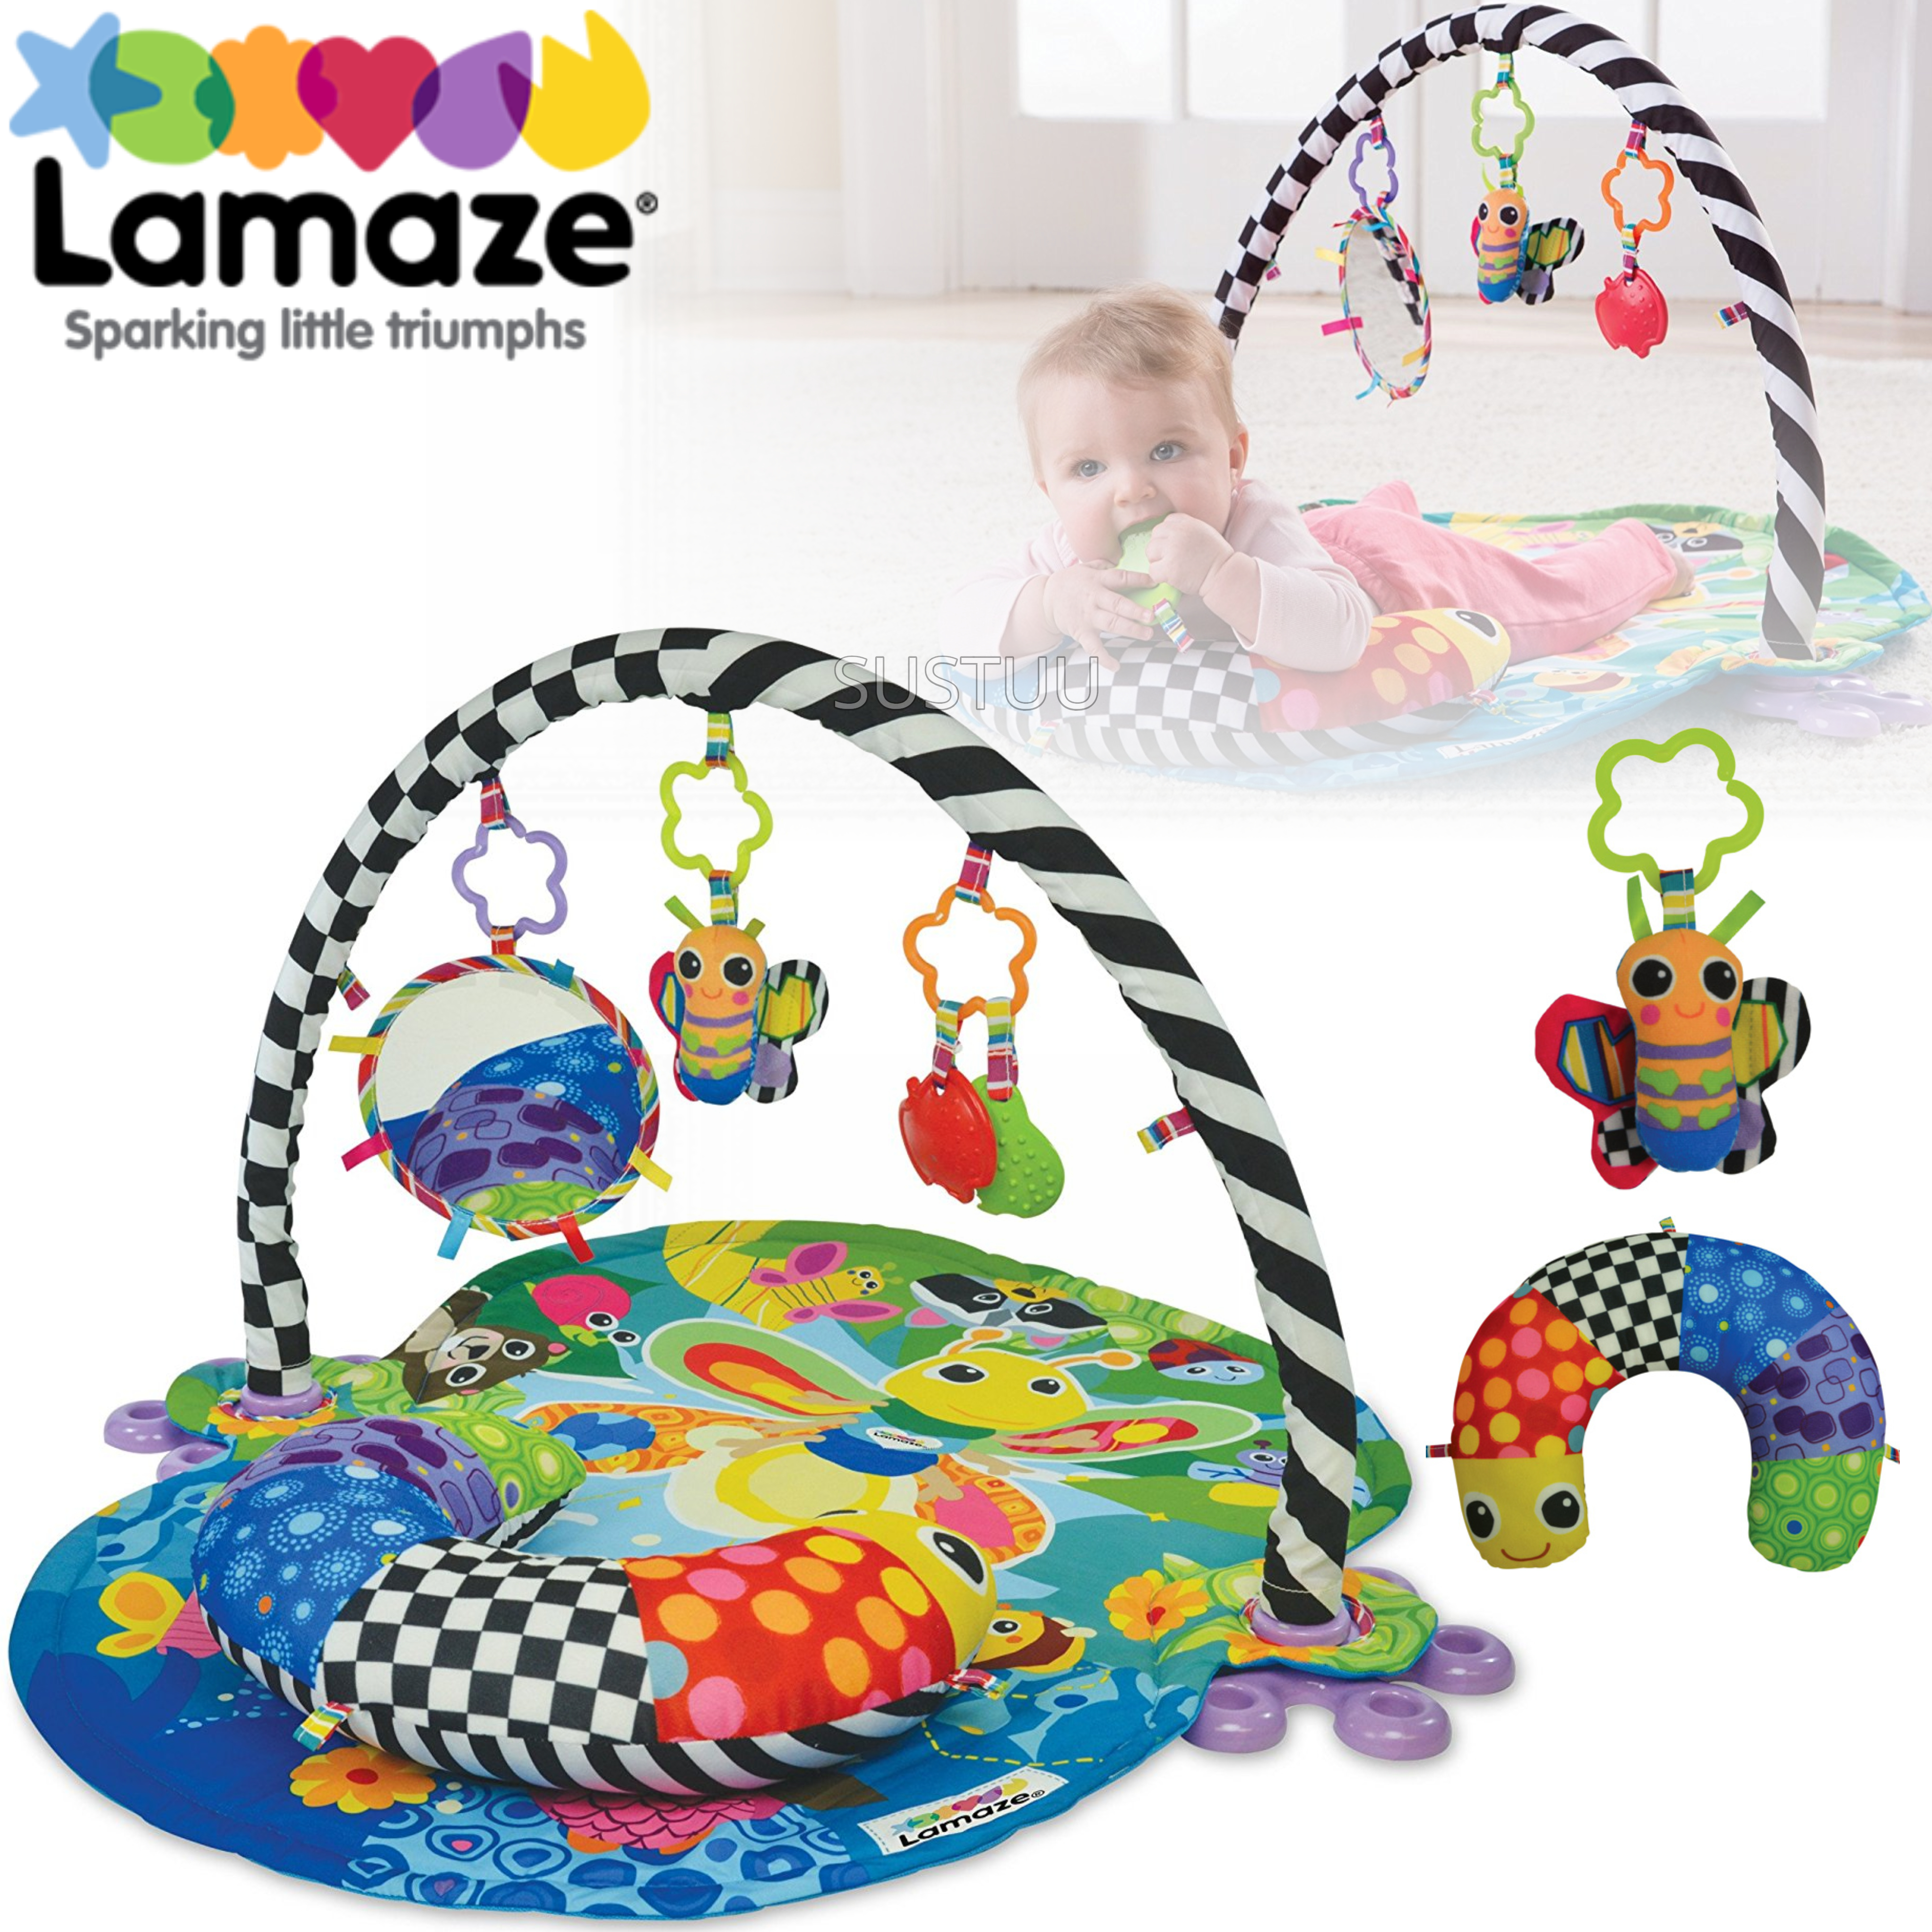 Baby Lamaze Freddie The Firefly Gym Toys & Activities